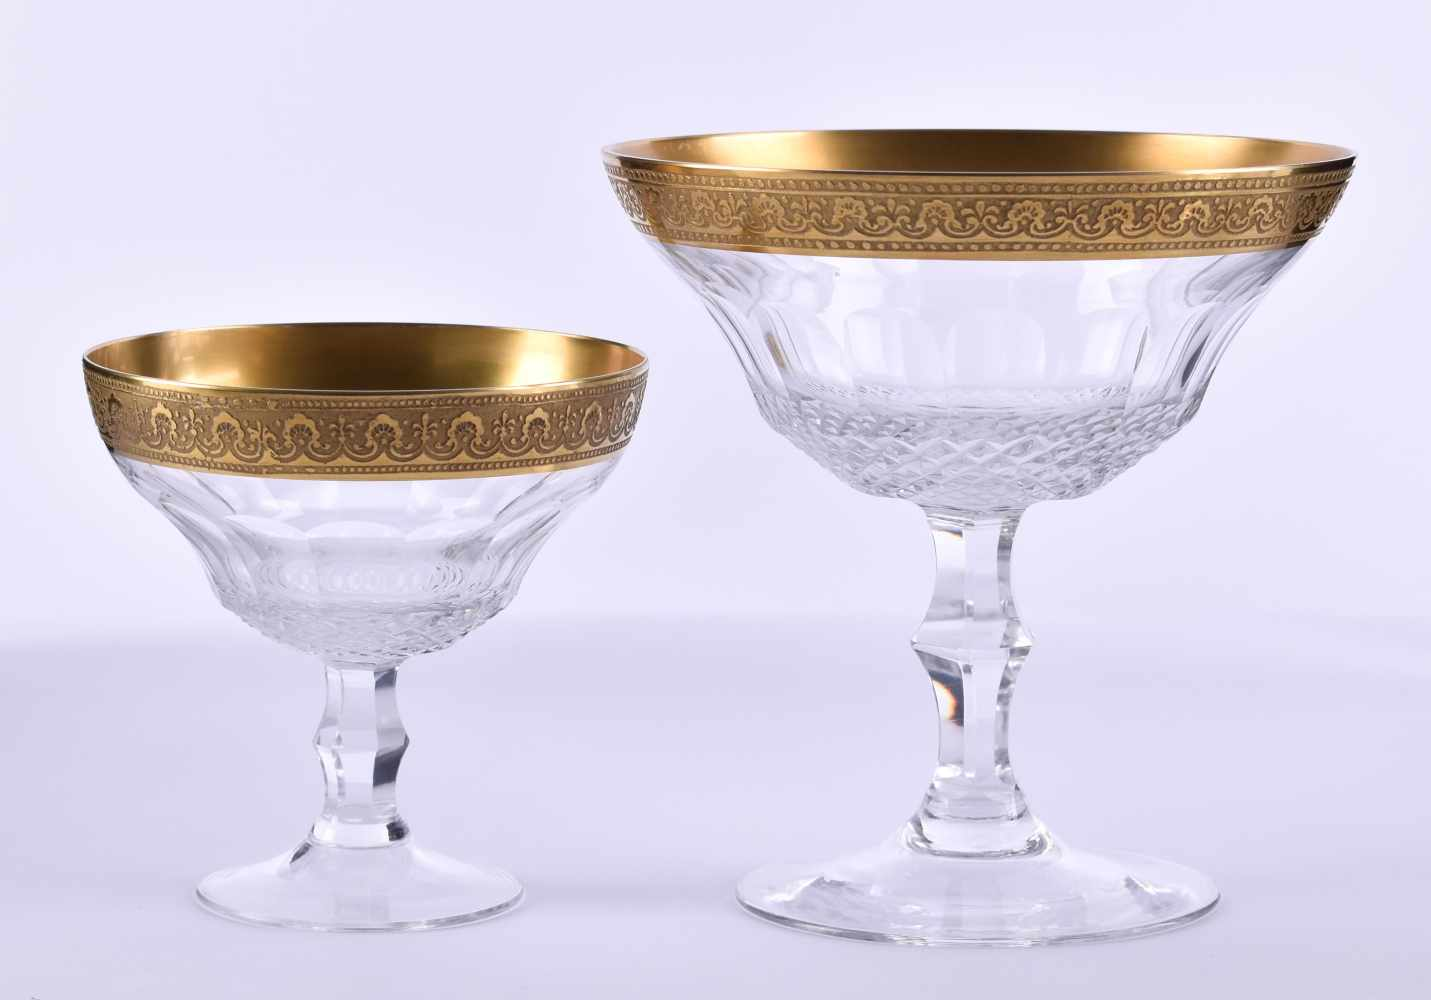 Lot 3 - Large convolute crystal glasses, Theresiental8 pieces, with gold edge, includes: 2 small vases, 11